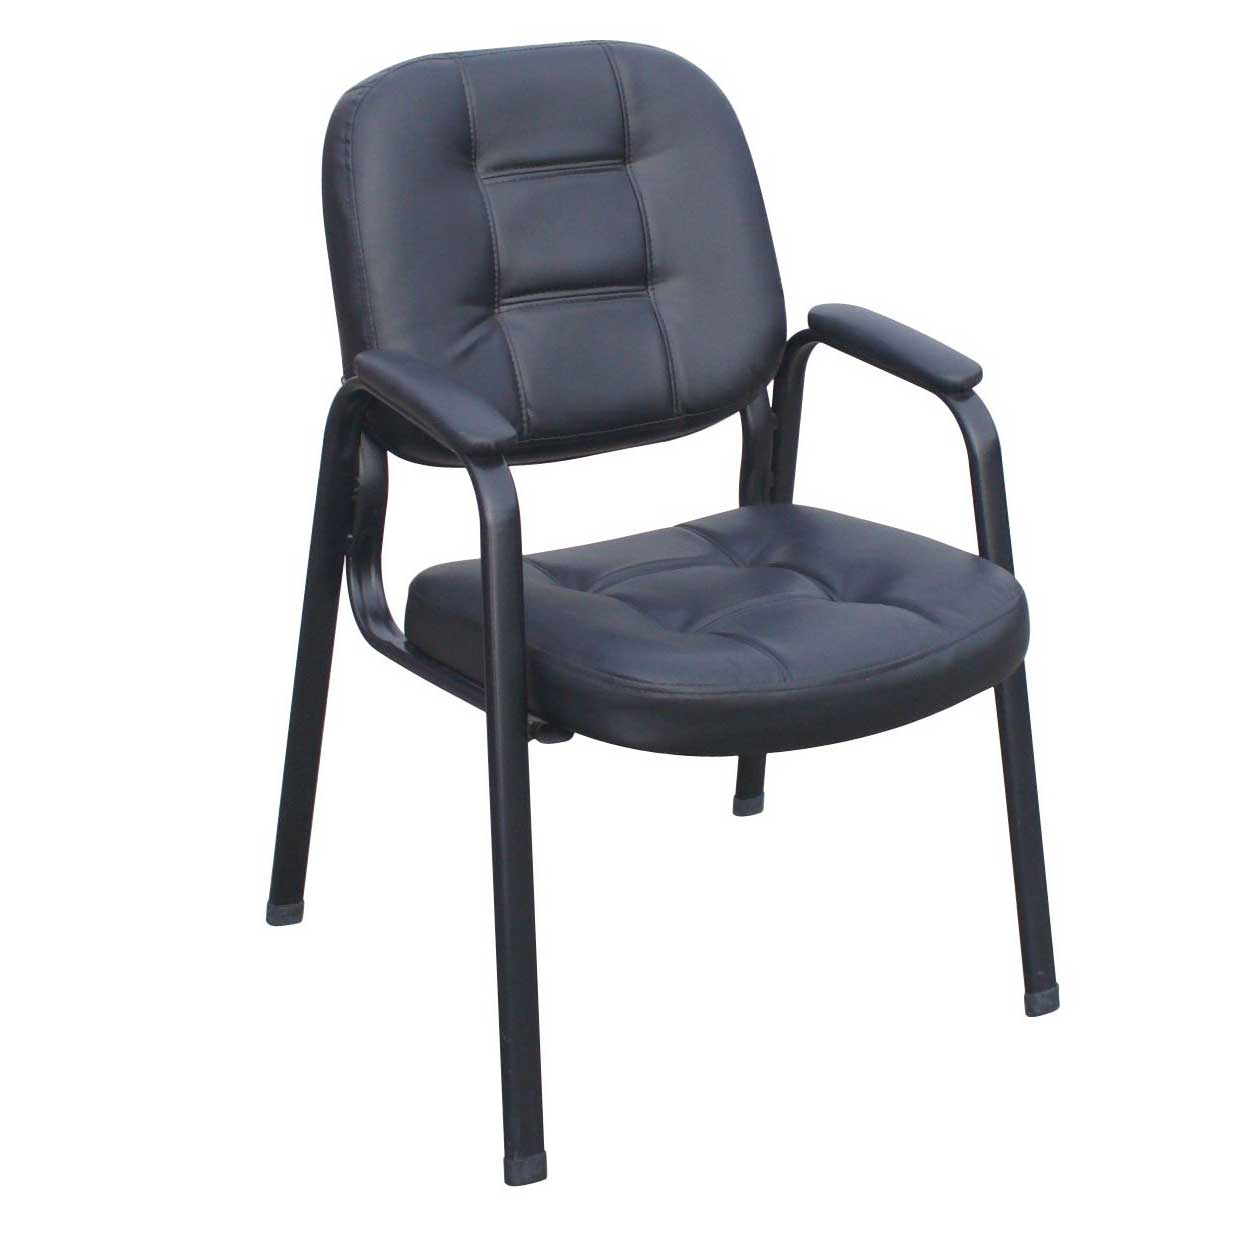 office visitor chairs jewish wedding chair dance gif buying guides